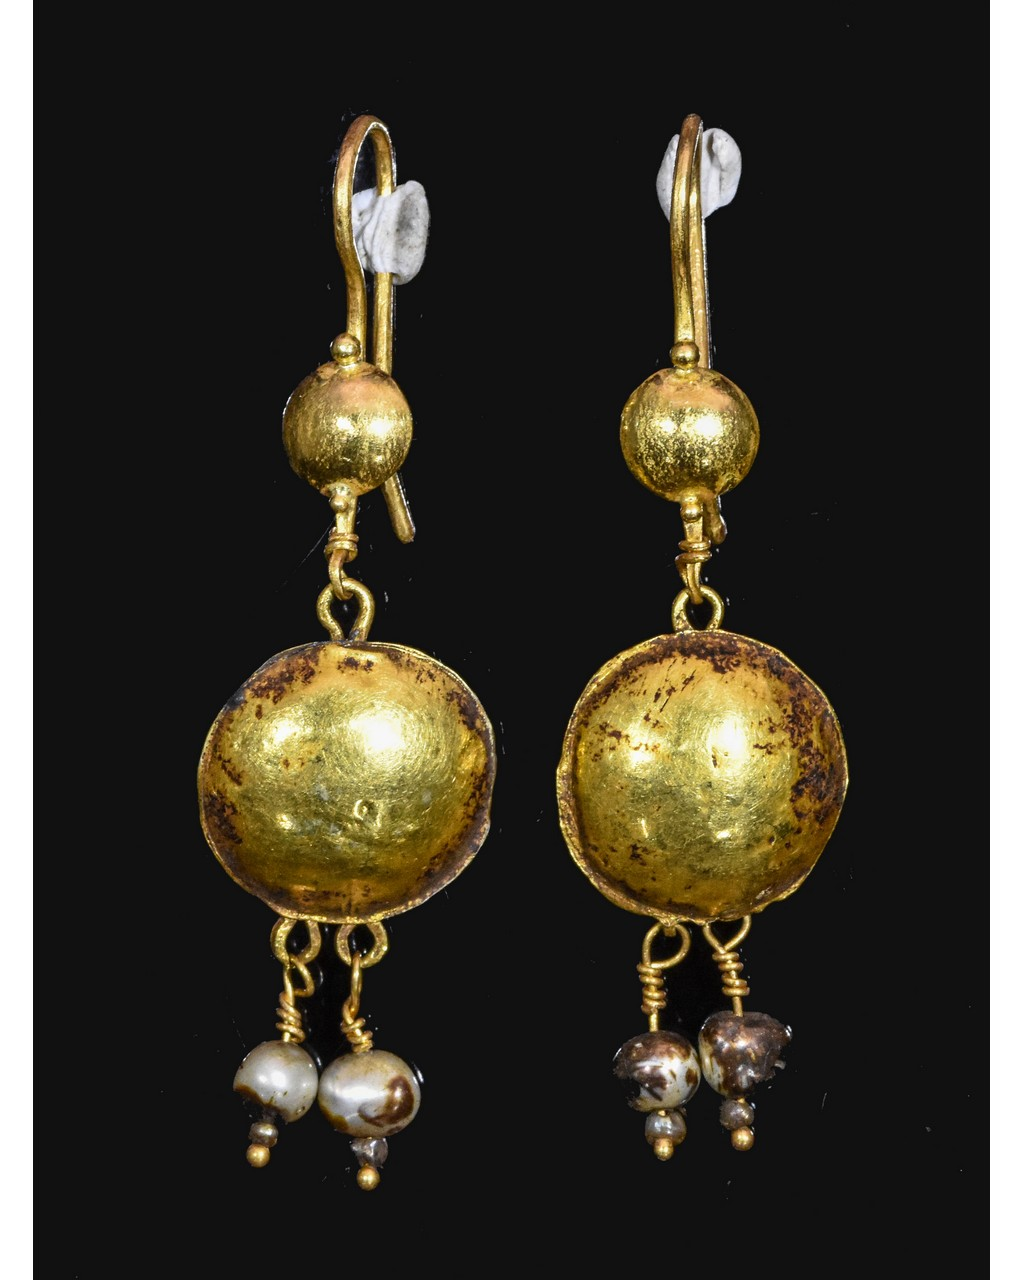 Lot 28 - PAIR OF ROMAN GOLD EARRINGS WITH PEARLS